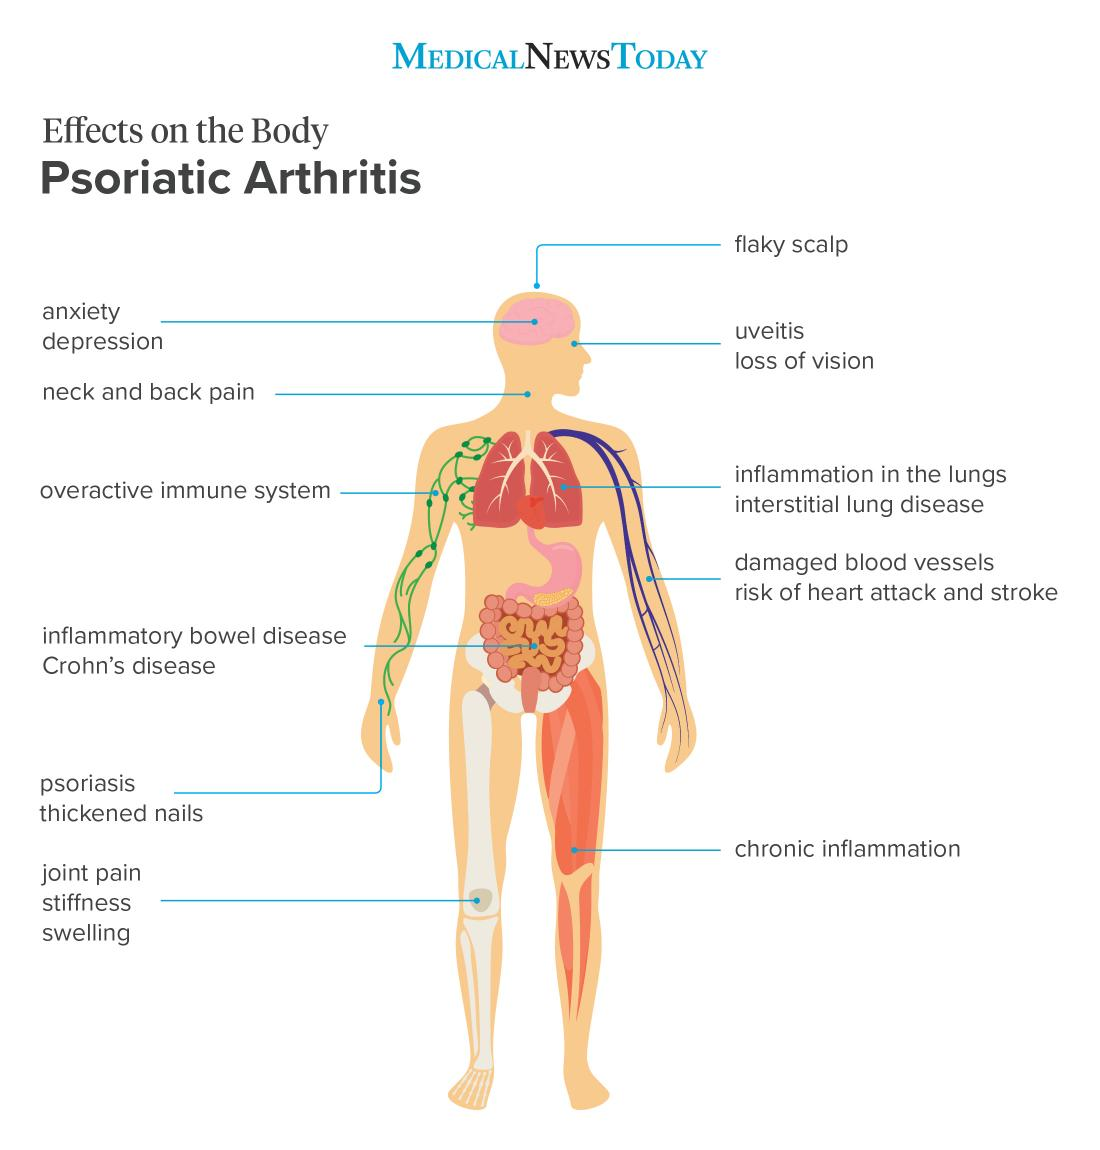 Psoriatic Arthritis Lifestyle, Home Remedies and Homeopathy   Saburi Solace Clinic   psoriatic arthritis treatment with homeopathy in chandigarh,joint pains treatment with homeopathy in chandigarh,obesity treatment with homeopathy in chandigarh,psoriasis treatment with homeopathy  - GL100339